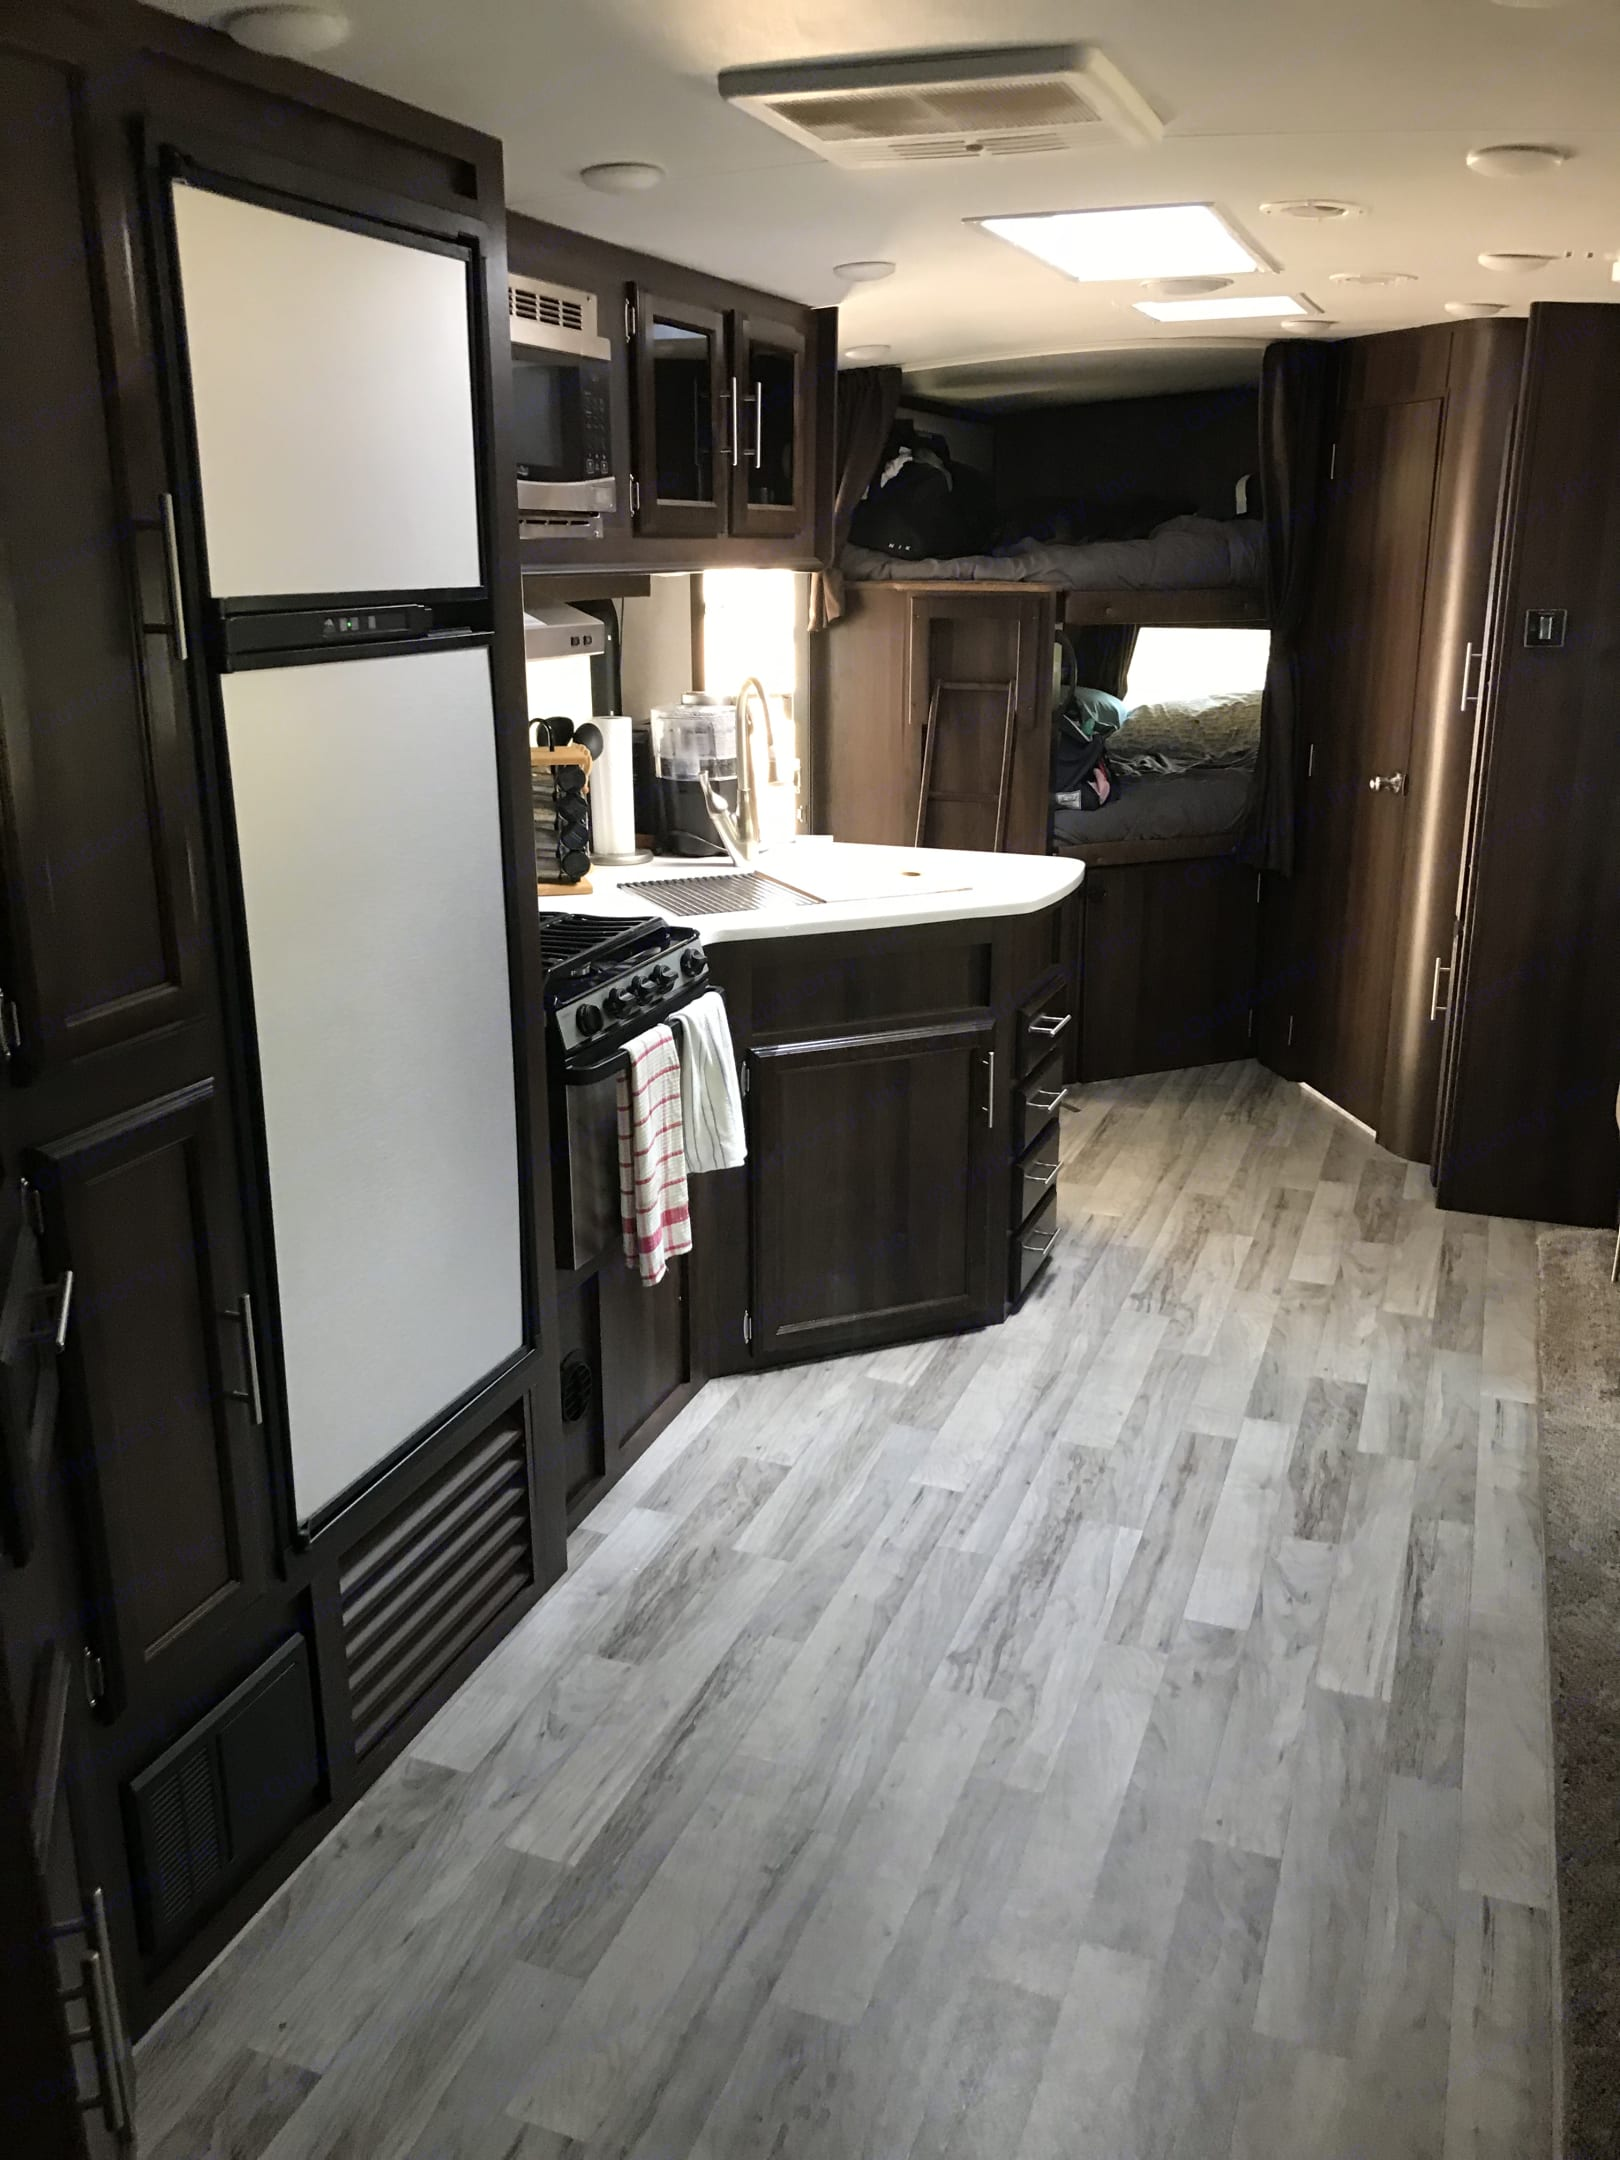 Stainless steel appliances with oversized fridge and solid surface countertops.. Jayco White Hawk 2018